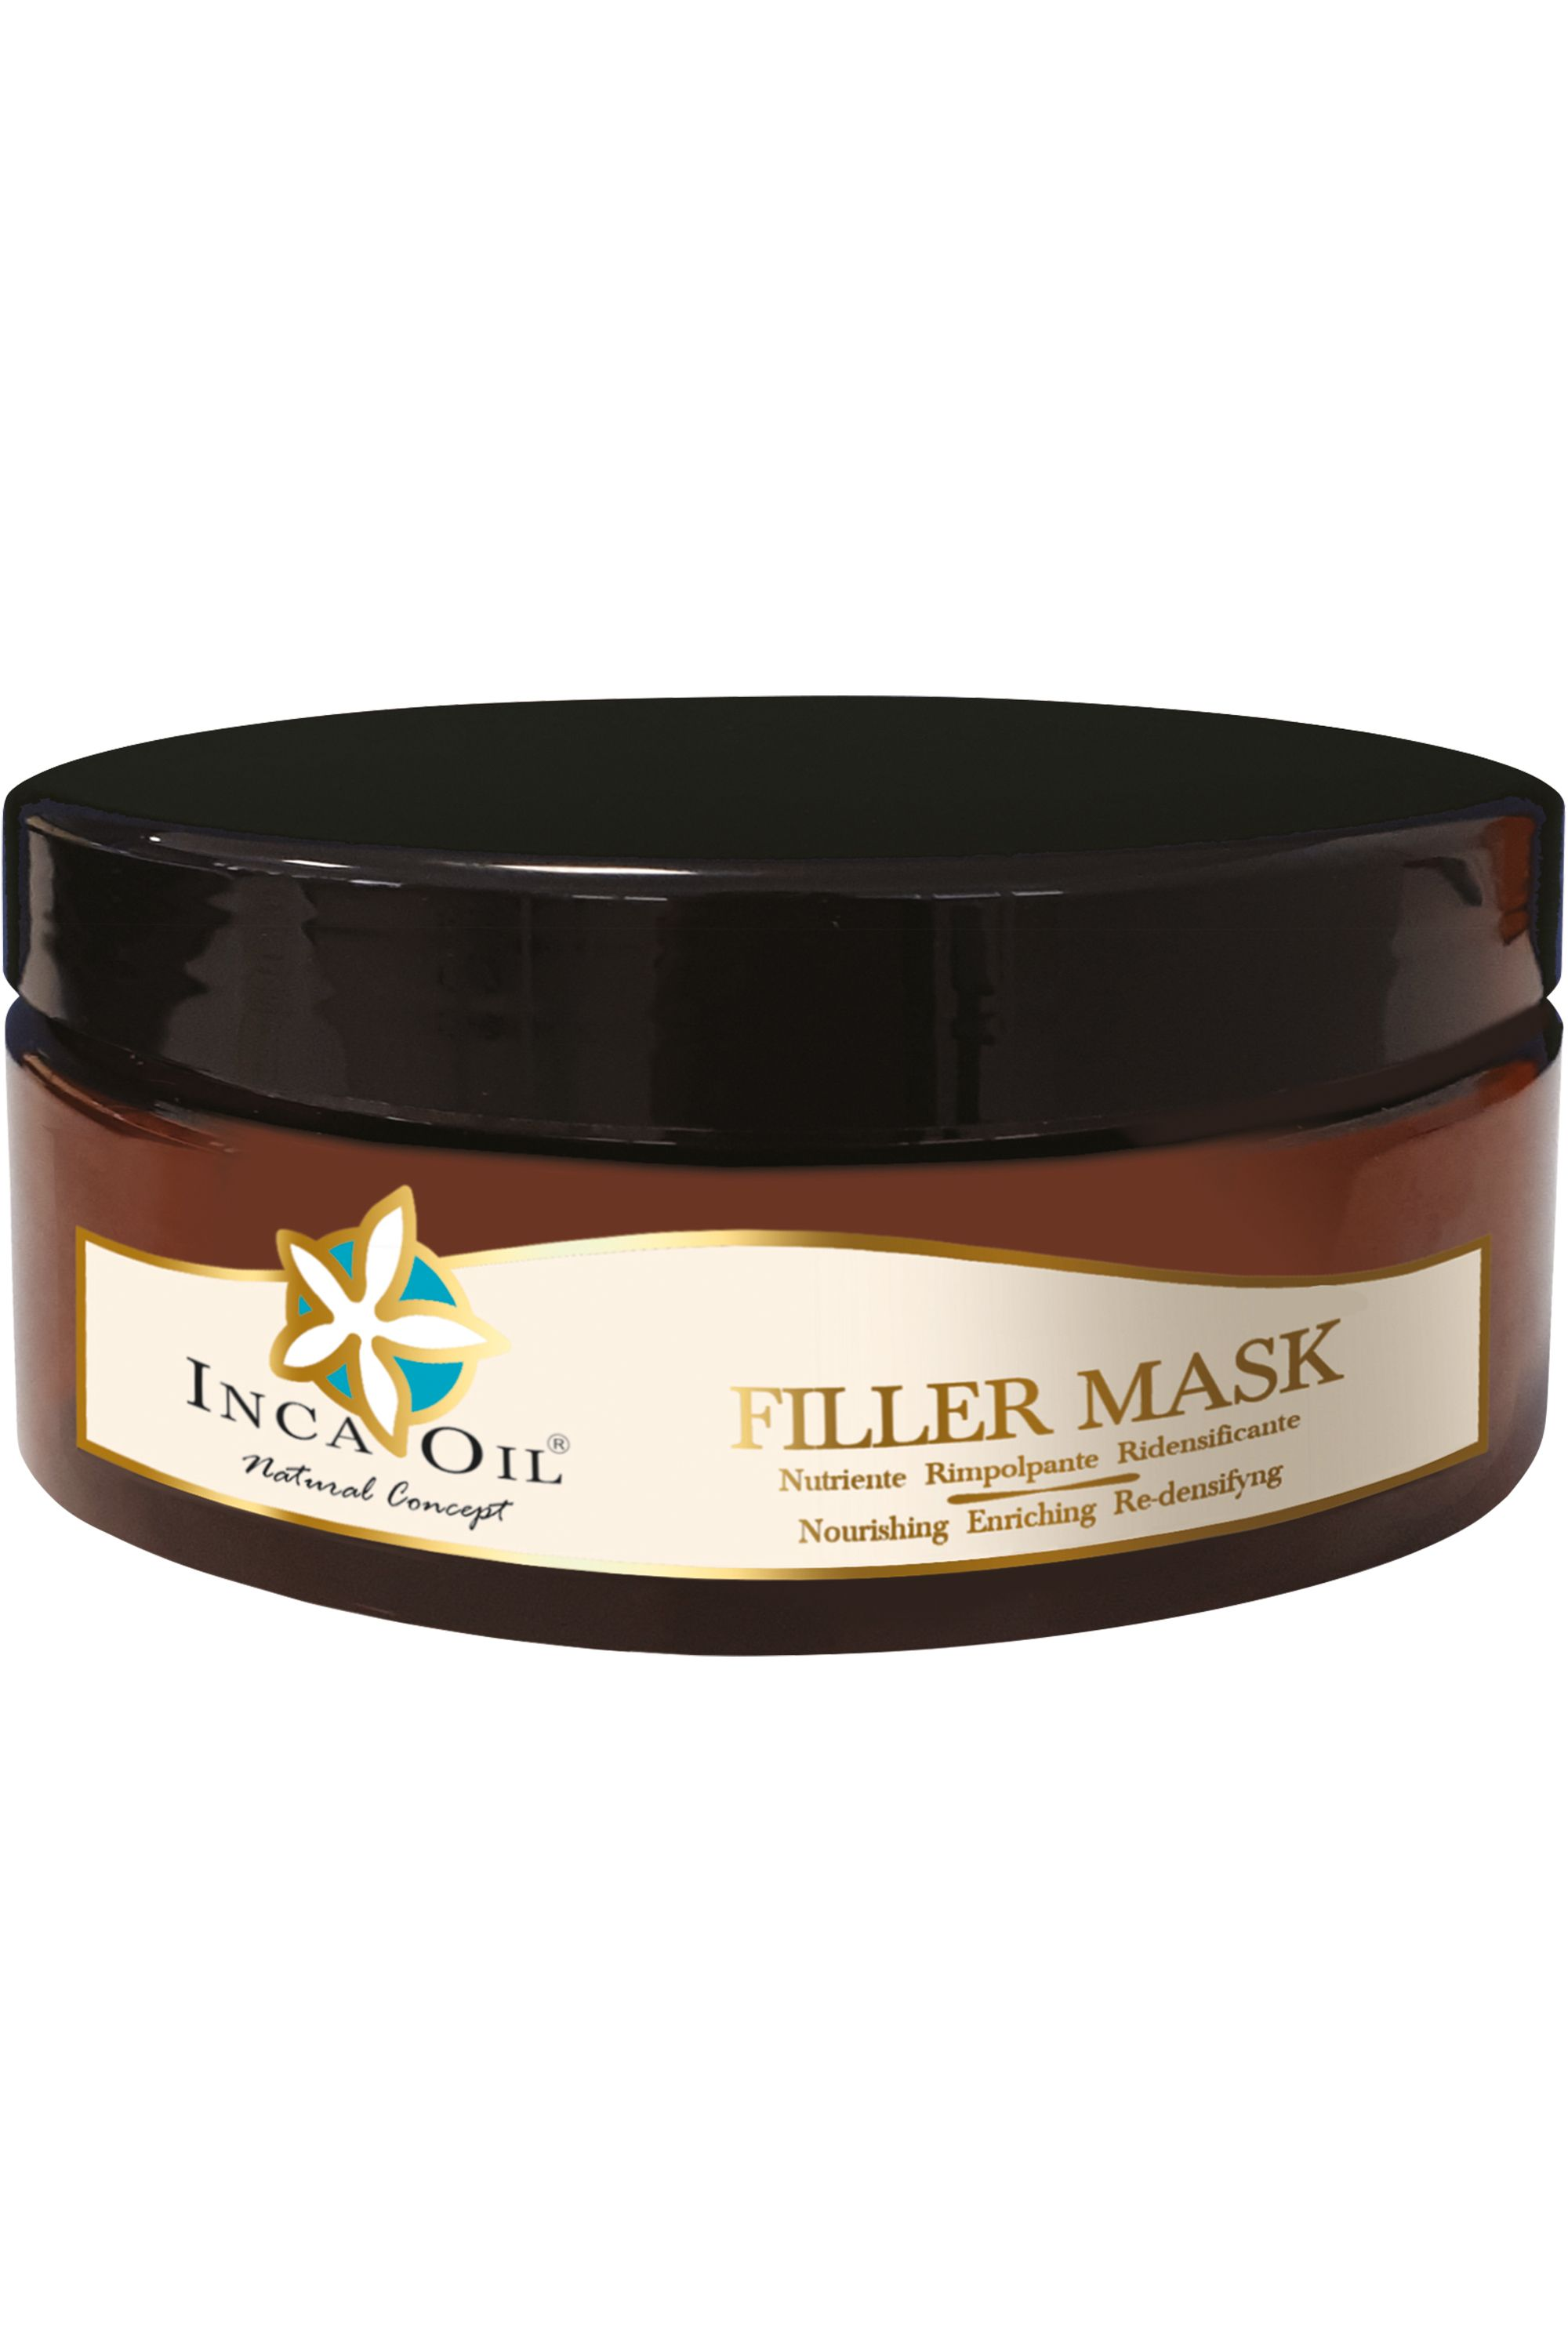 Blissim : Inca Oil - Masque Filler Mask - Masque Filler Mask